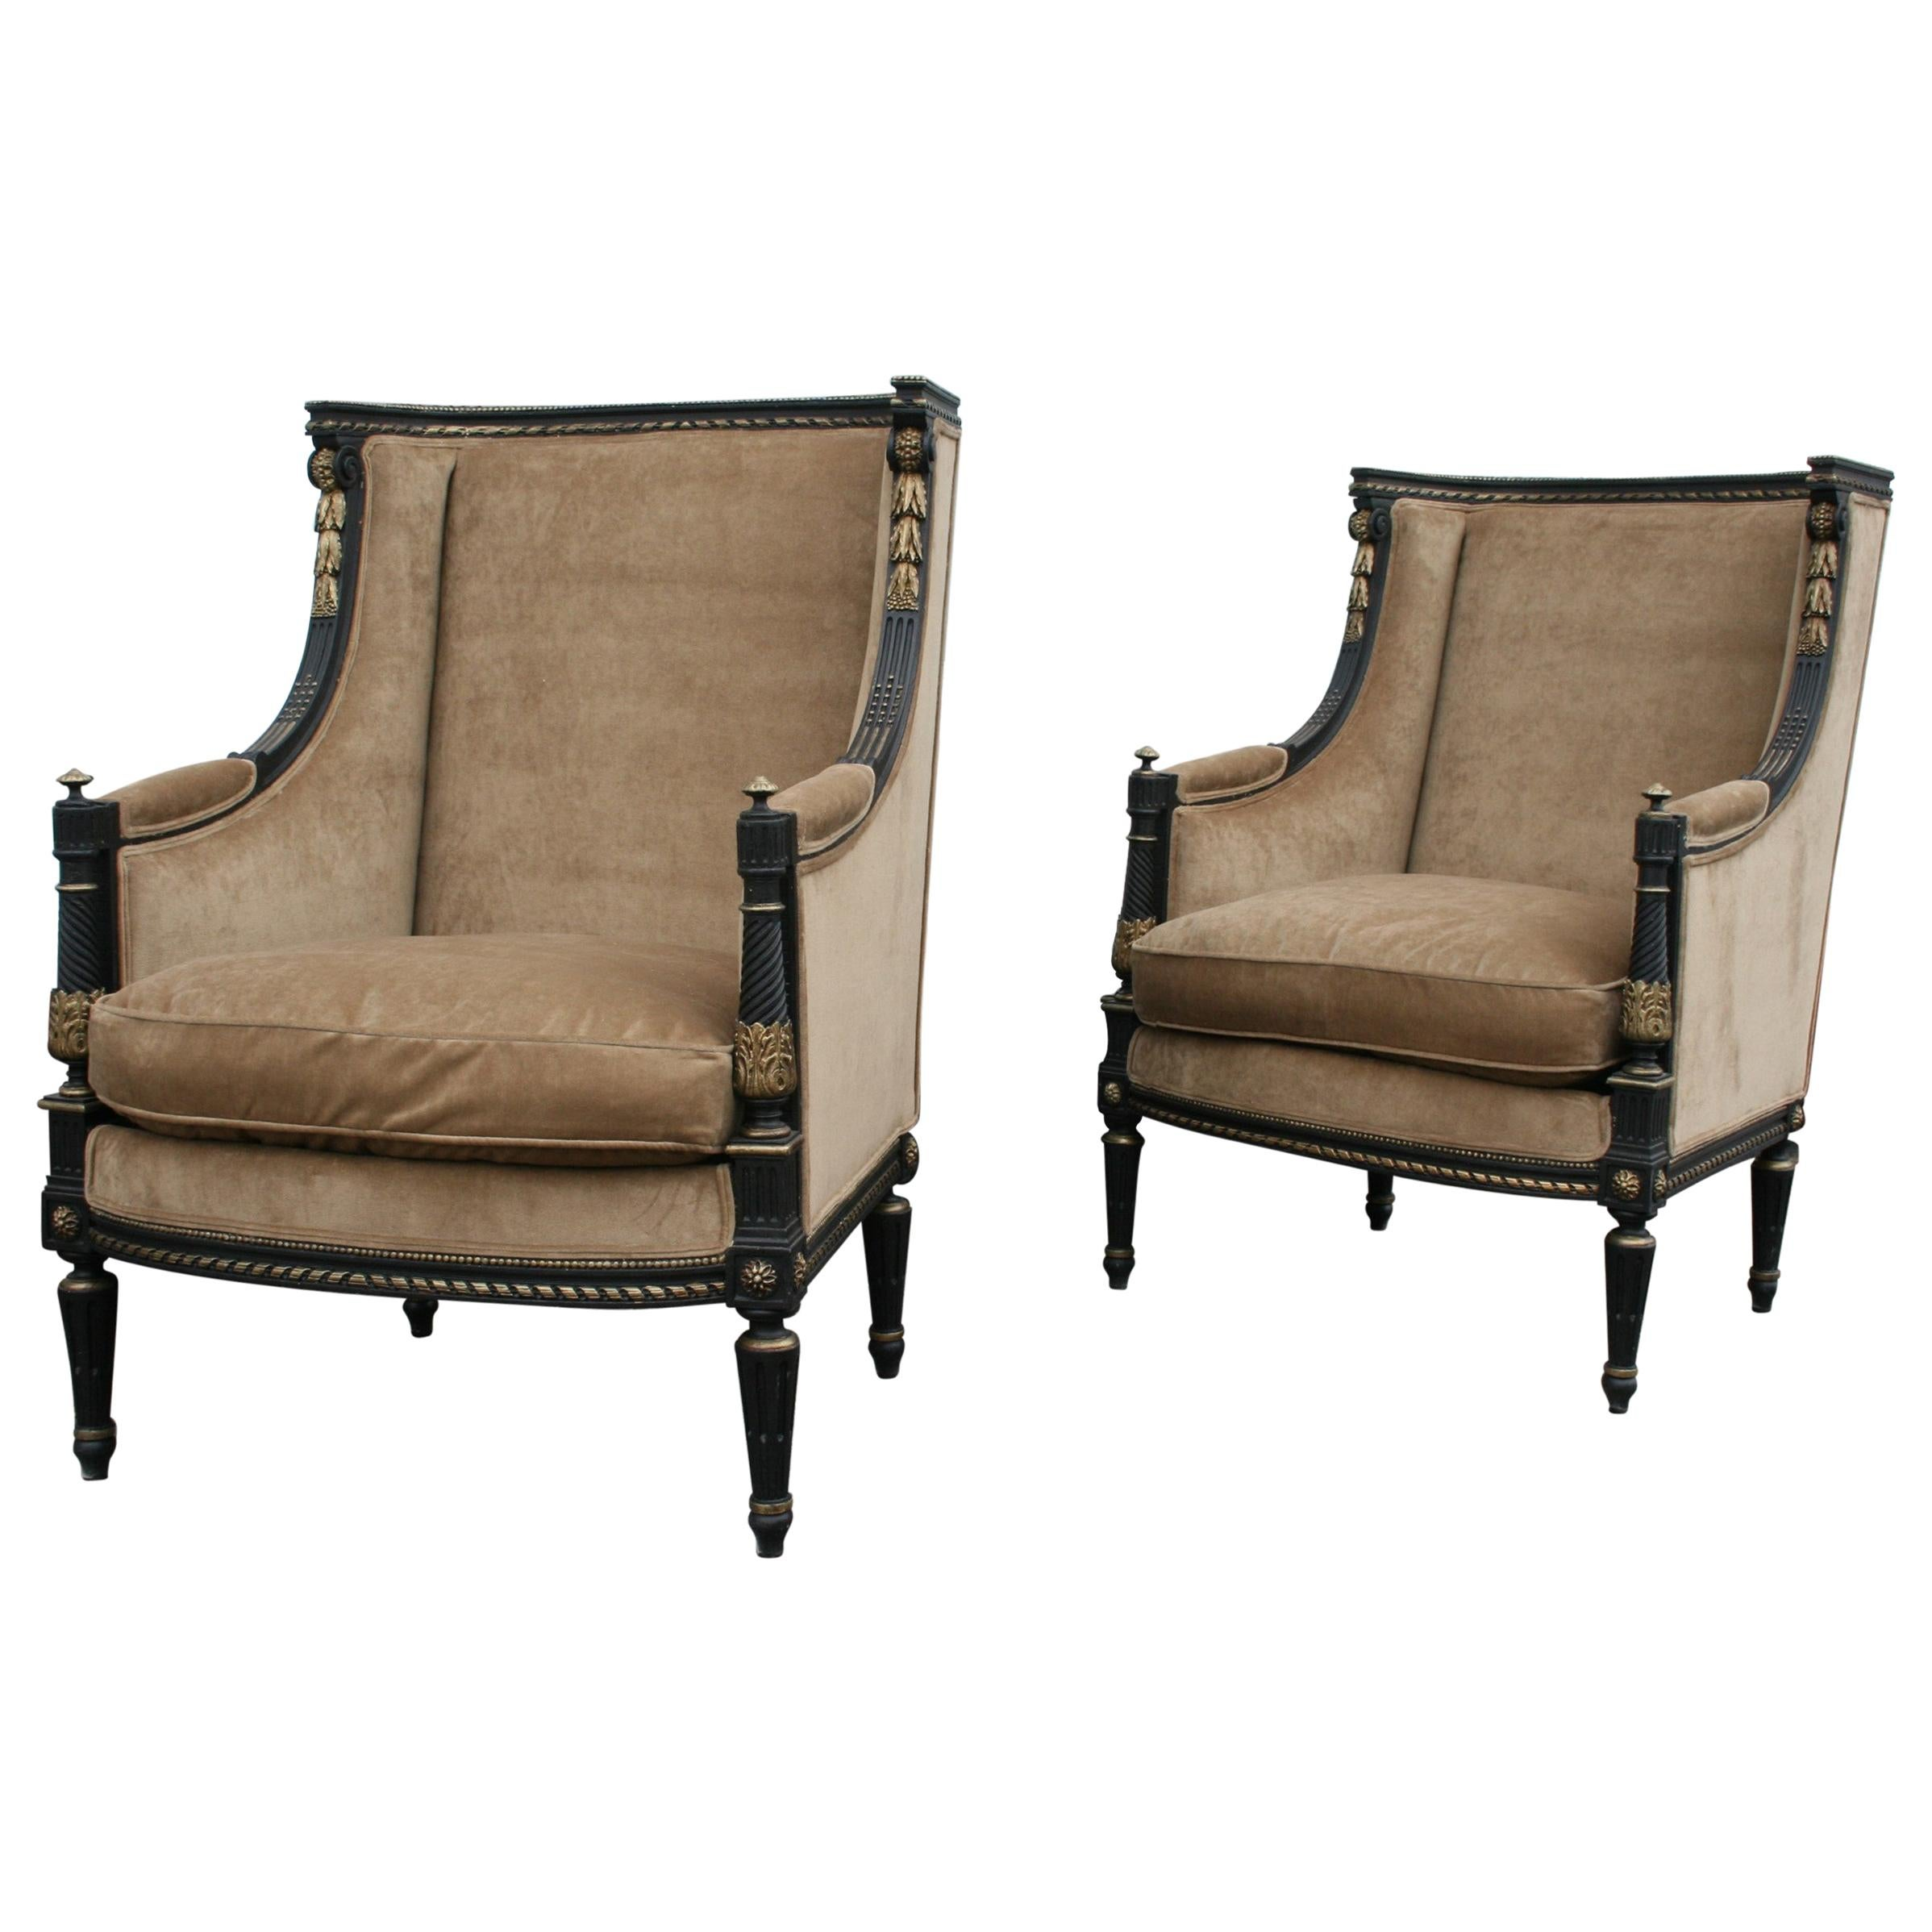 Pair of French Bergère Armchairs